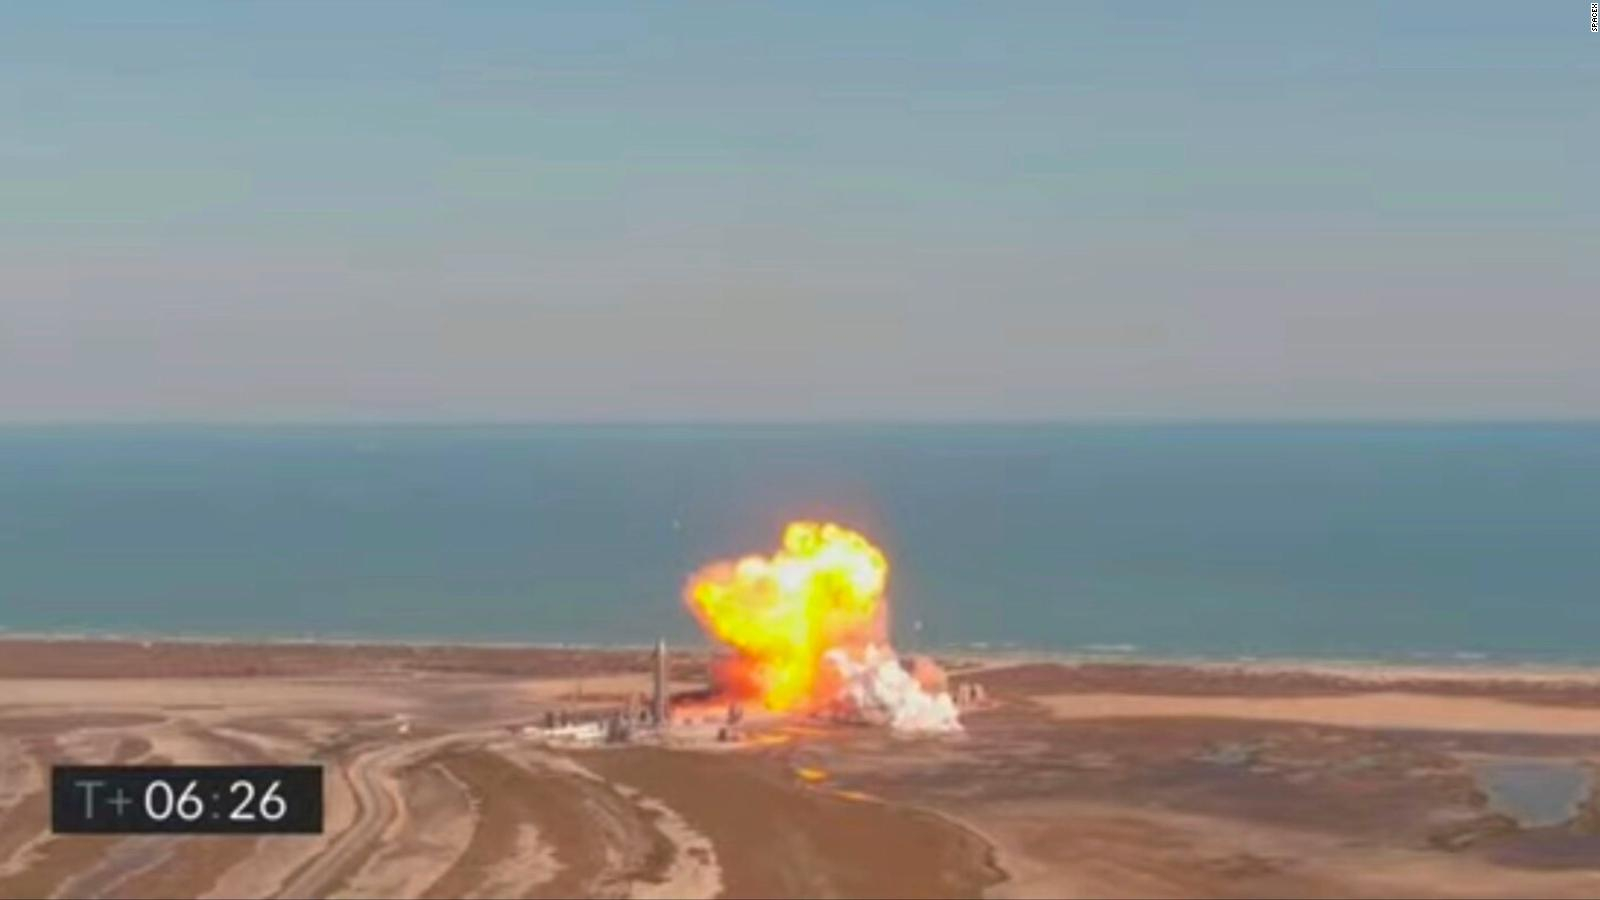 The SpaceX rocket exploded during the test, the causes of which are being investigated